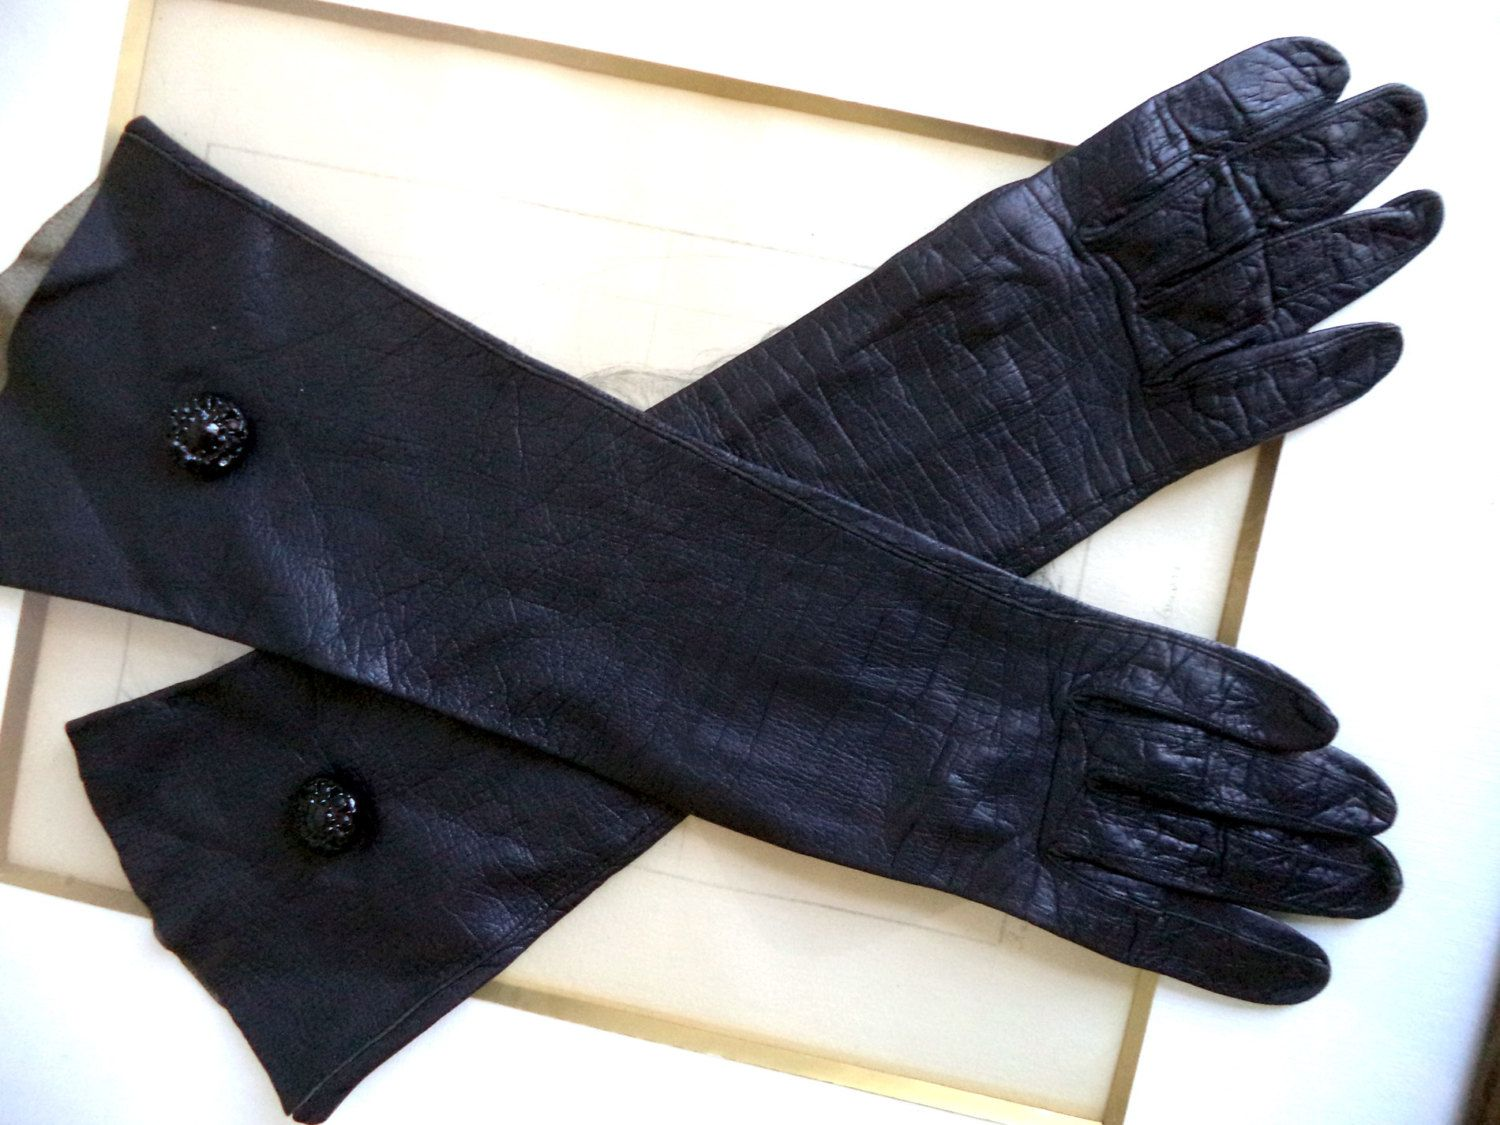 Vintage ladies leather opera gloves - 1950s Long Black Gloves Kid Leather Size 6 Tailored Germany Retro Small Opera Cocktail Dress Mid Elbow Button Womens Accessories Gloves